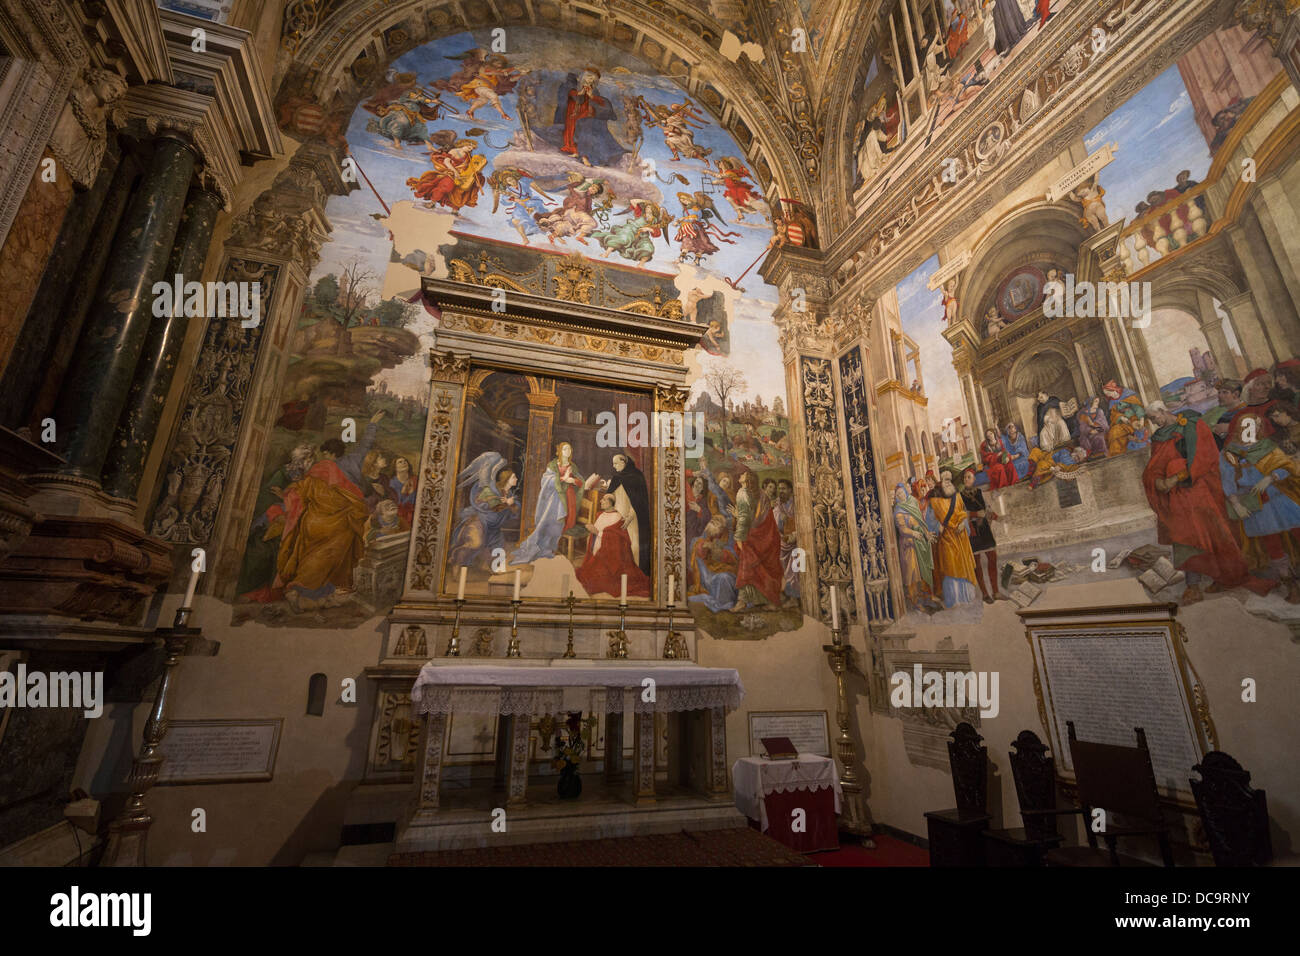 The Carafa Chapel, Santa Maria sopra Minerva church, Rome, Italy Stock Photo